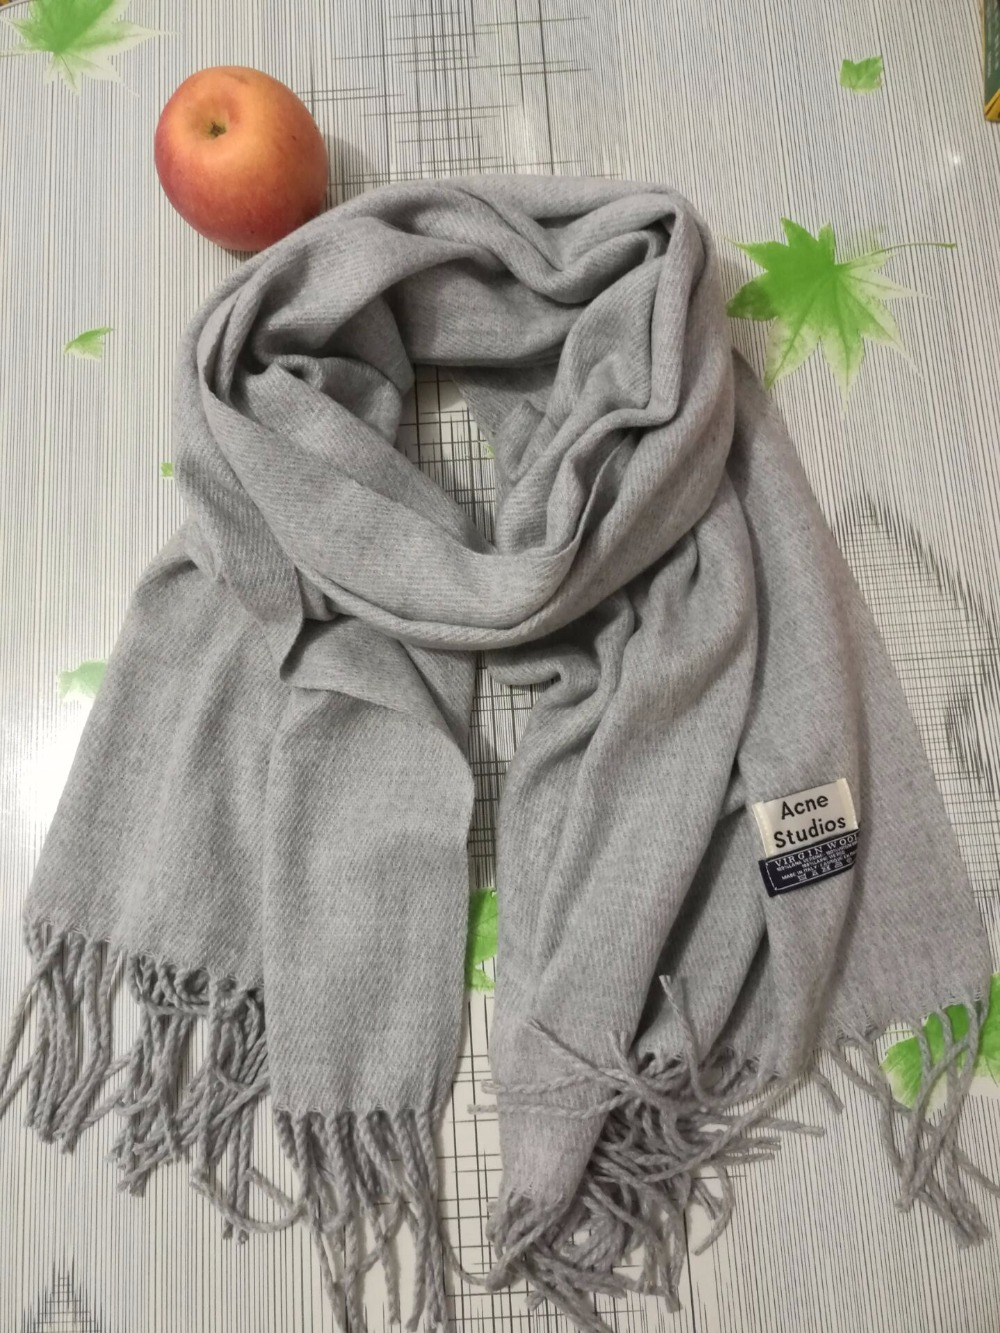 High Quality Acne Studio Scarves Virgin Wool Winter Scarf For Woman Long Tassel Solid Ponchos Luxury Brand Warm neckerchief Wrap